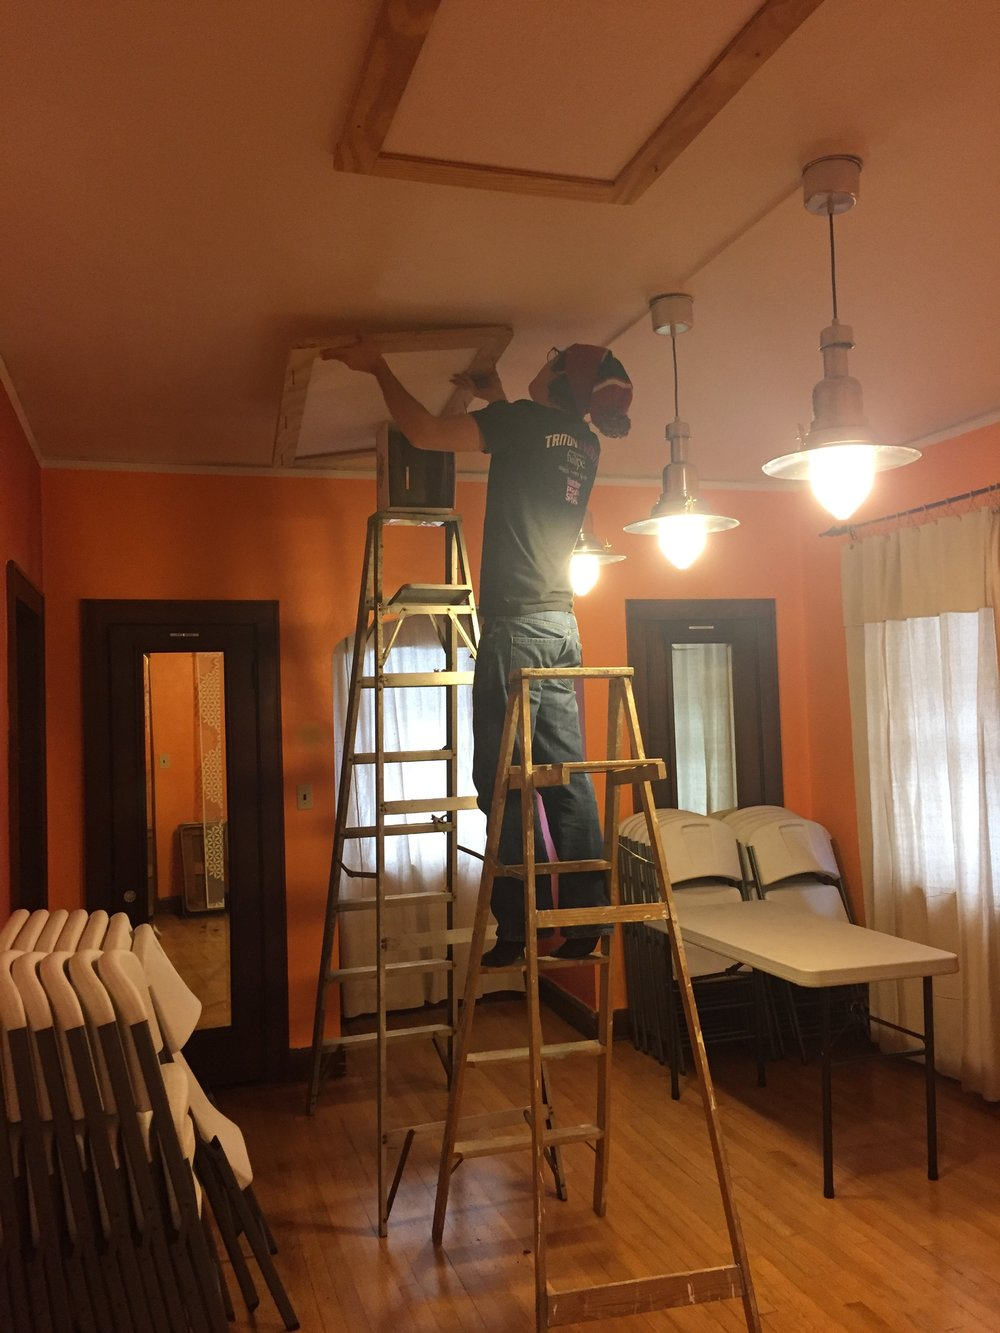 Andrew installing sound-dampening panels in the dining room.